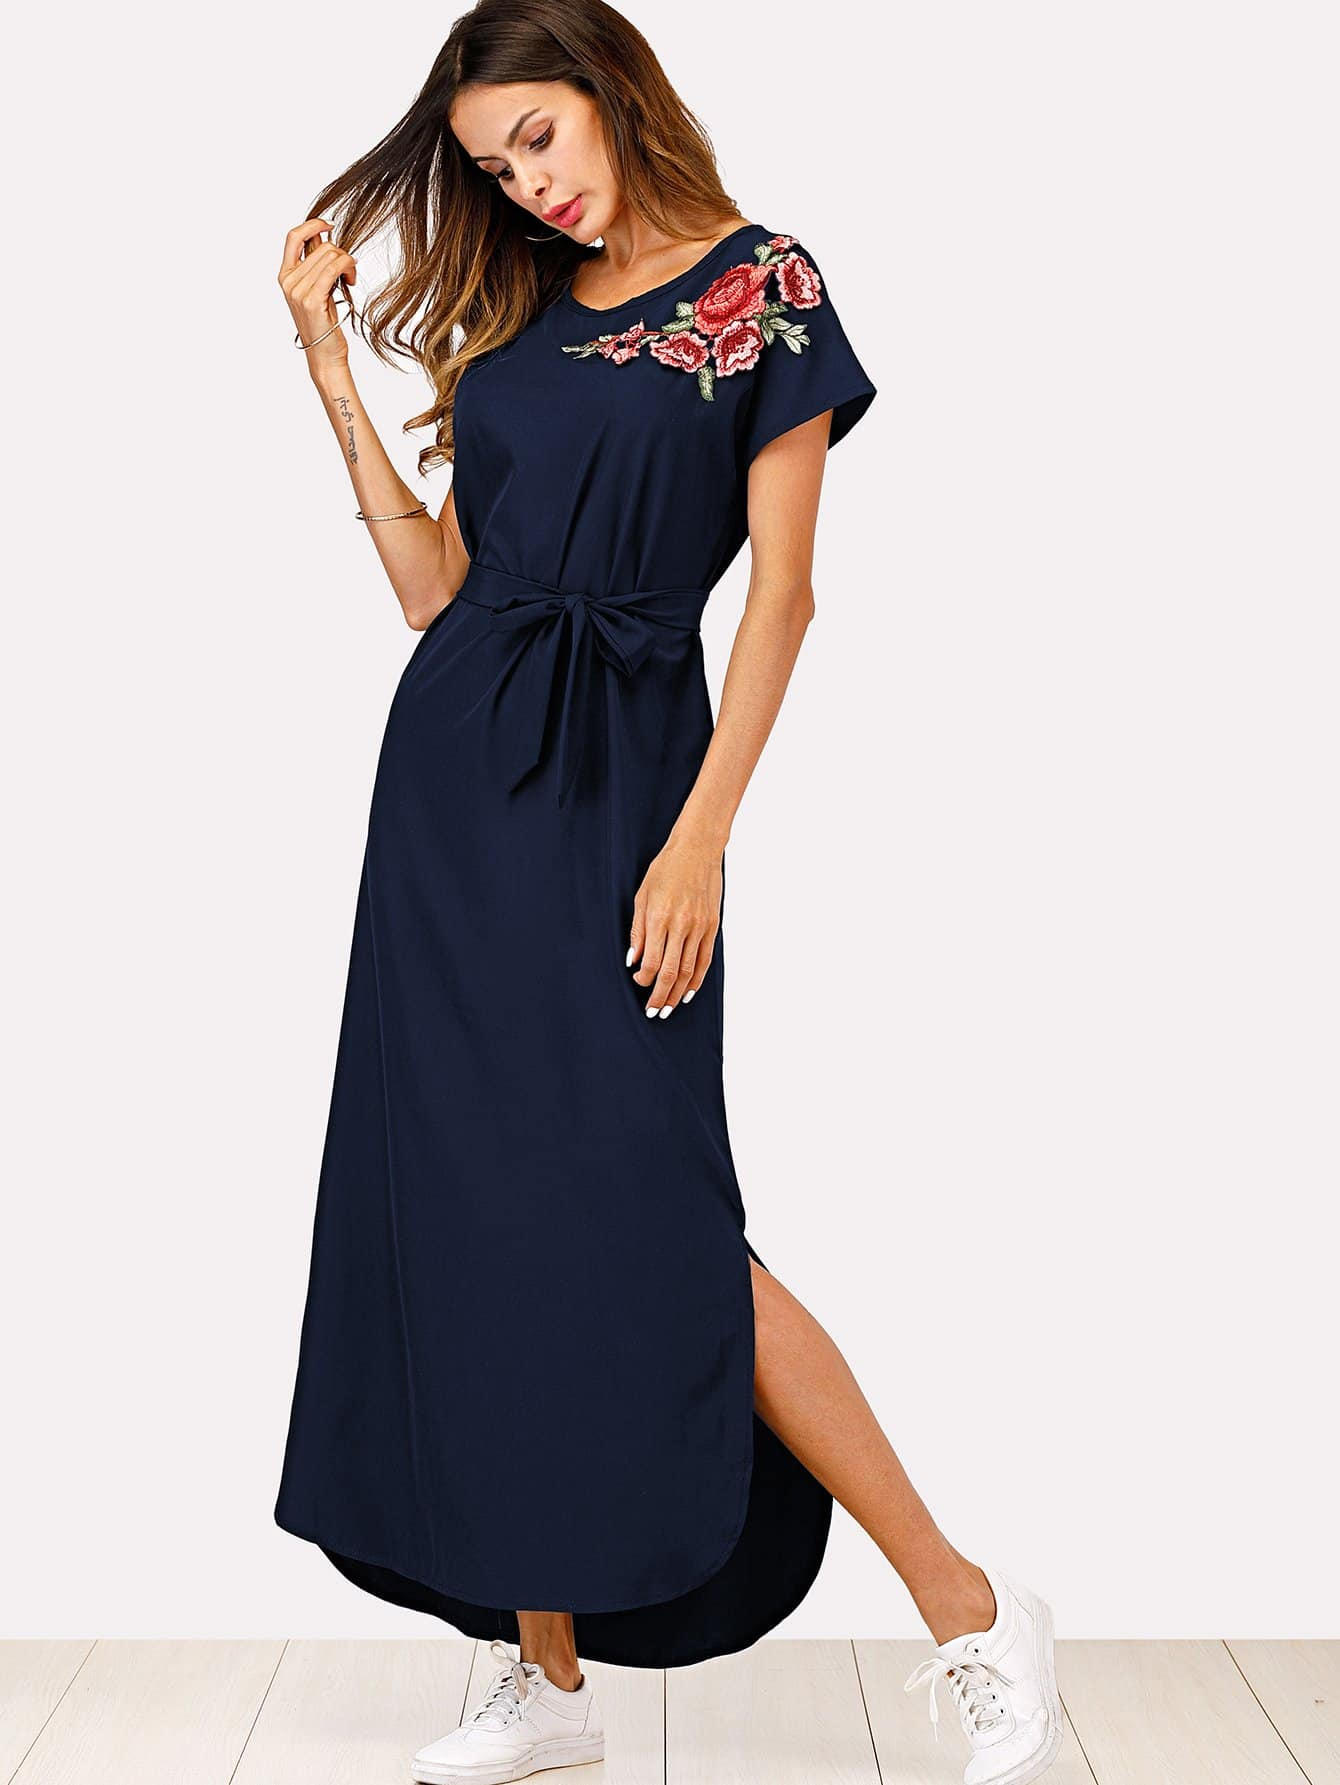 Split Side Embroidered Applique Dress split side embroidered applique dress